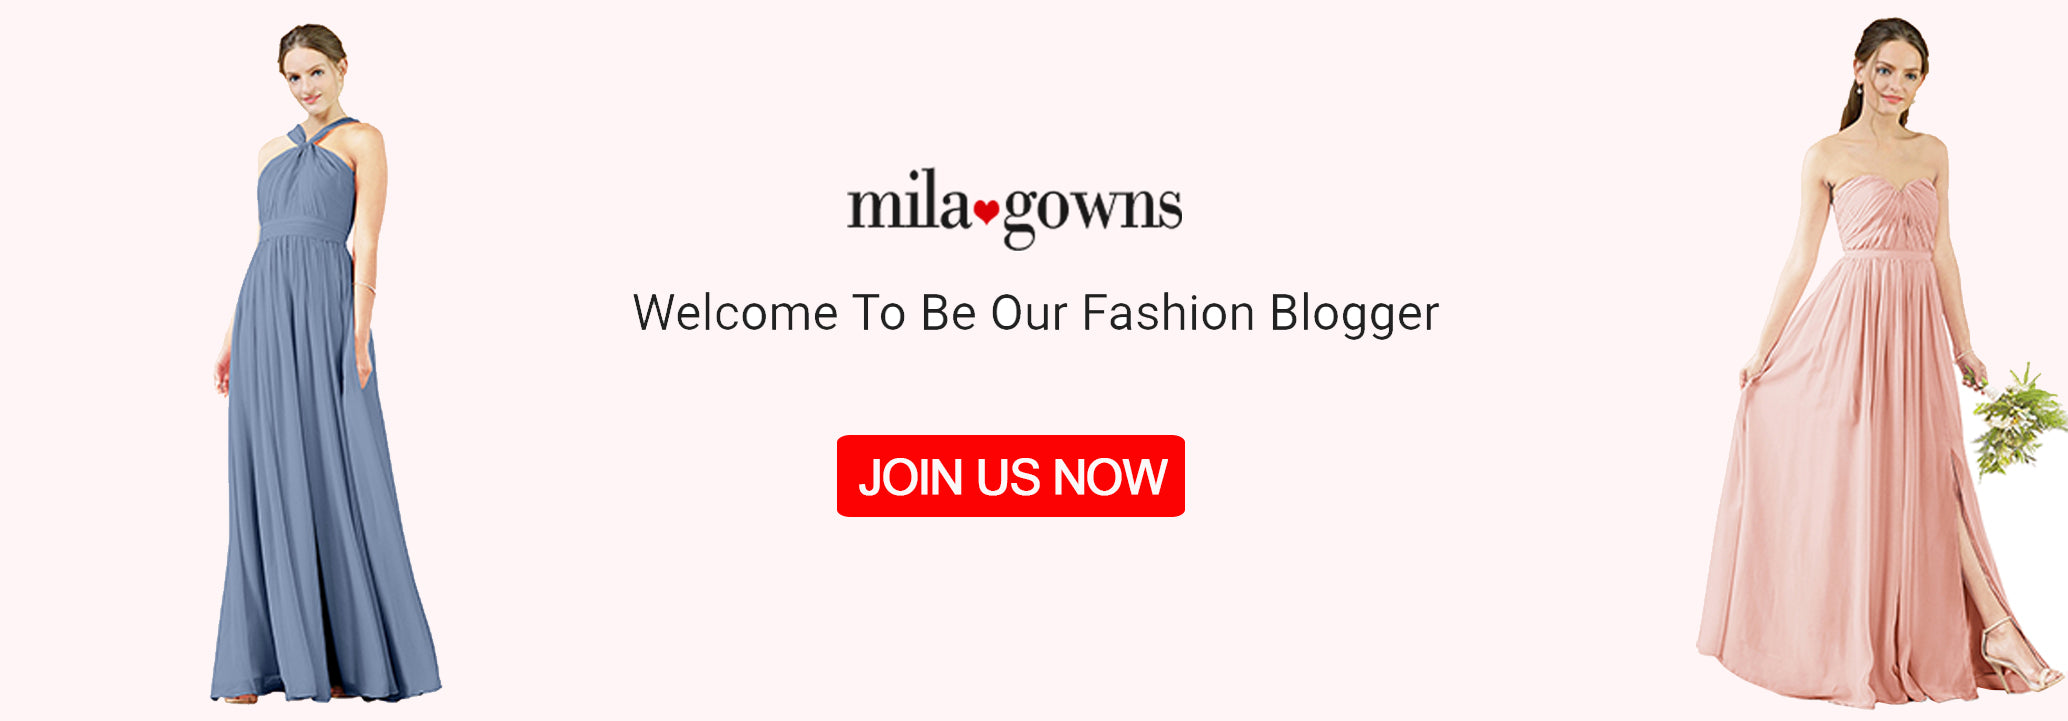 welcome to be mila gowns fashion blogger